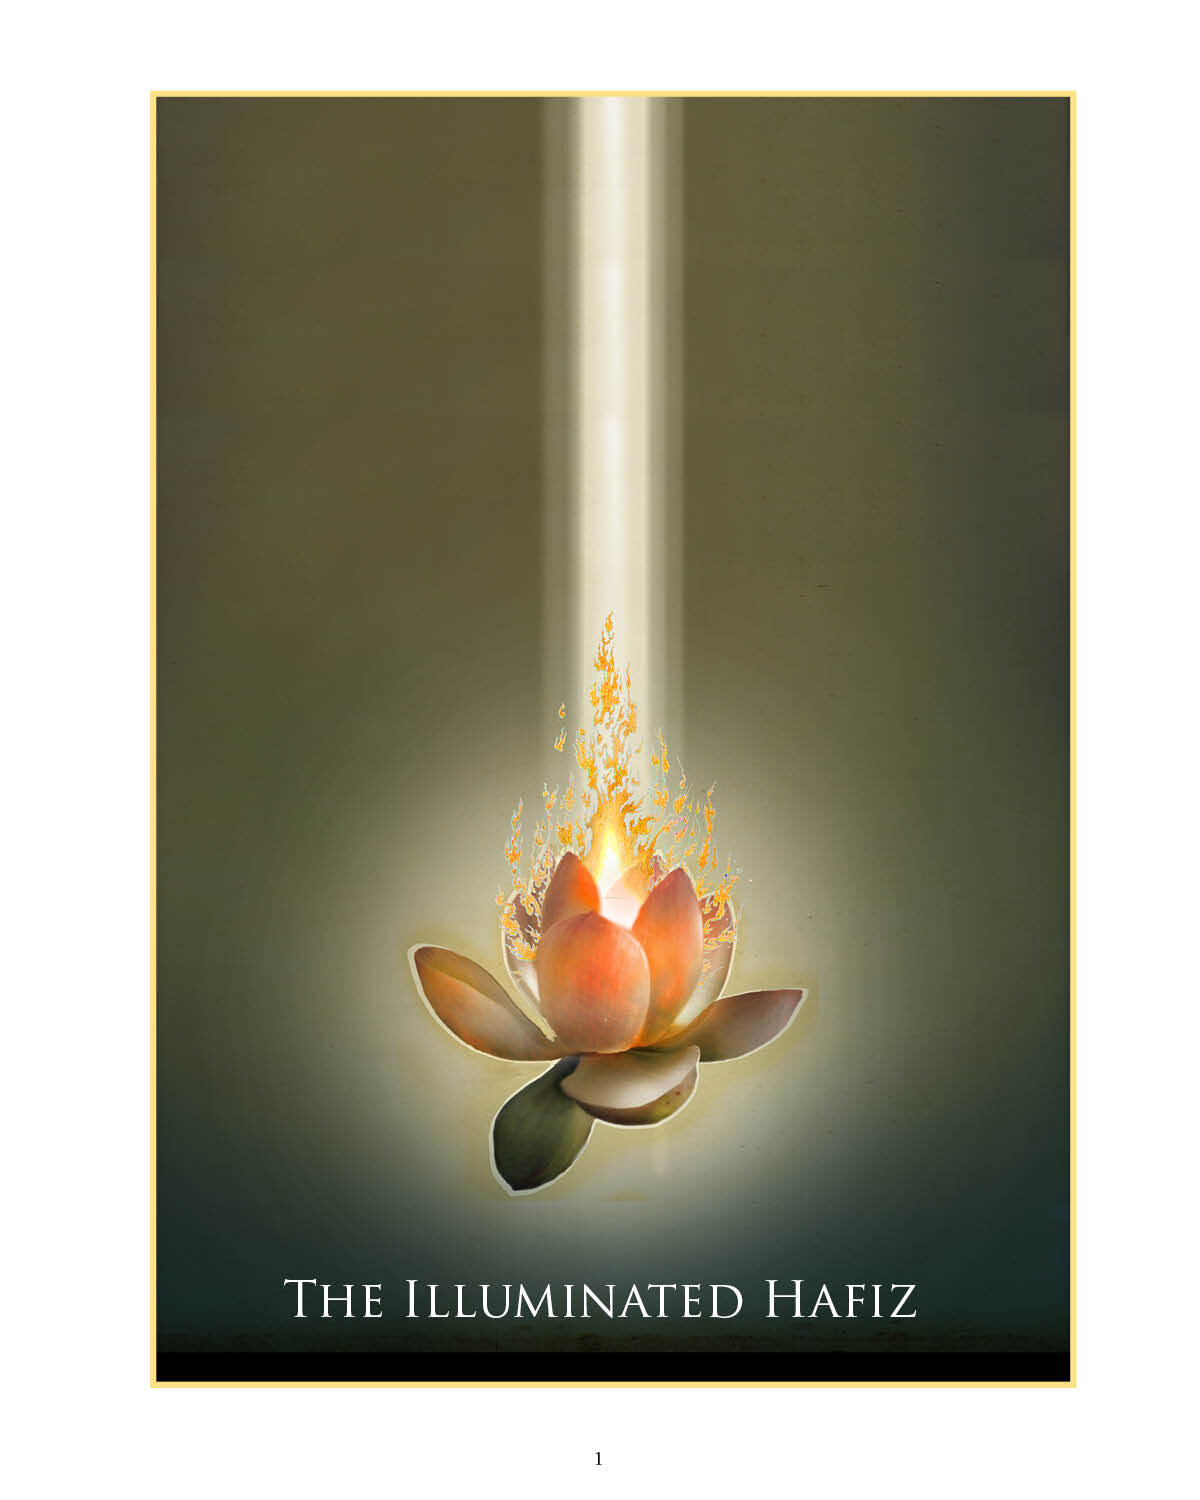 Illuminated Hafiz-look inside.jpg